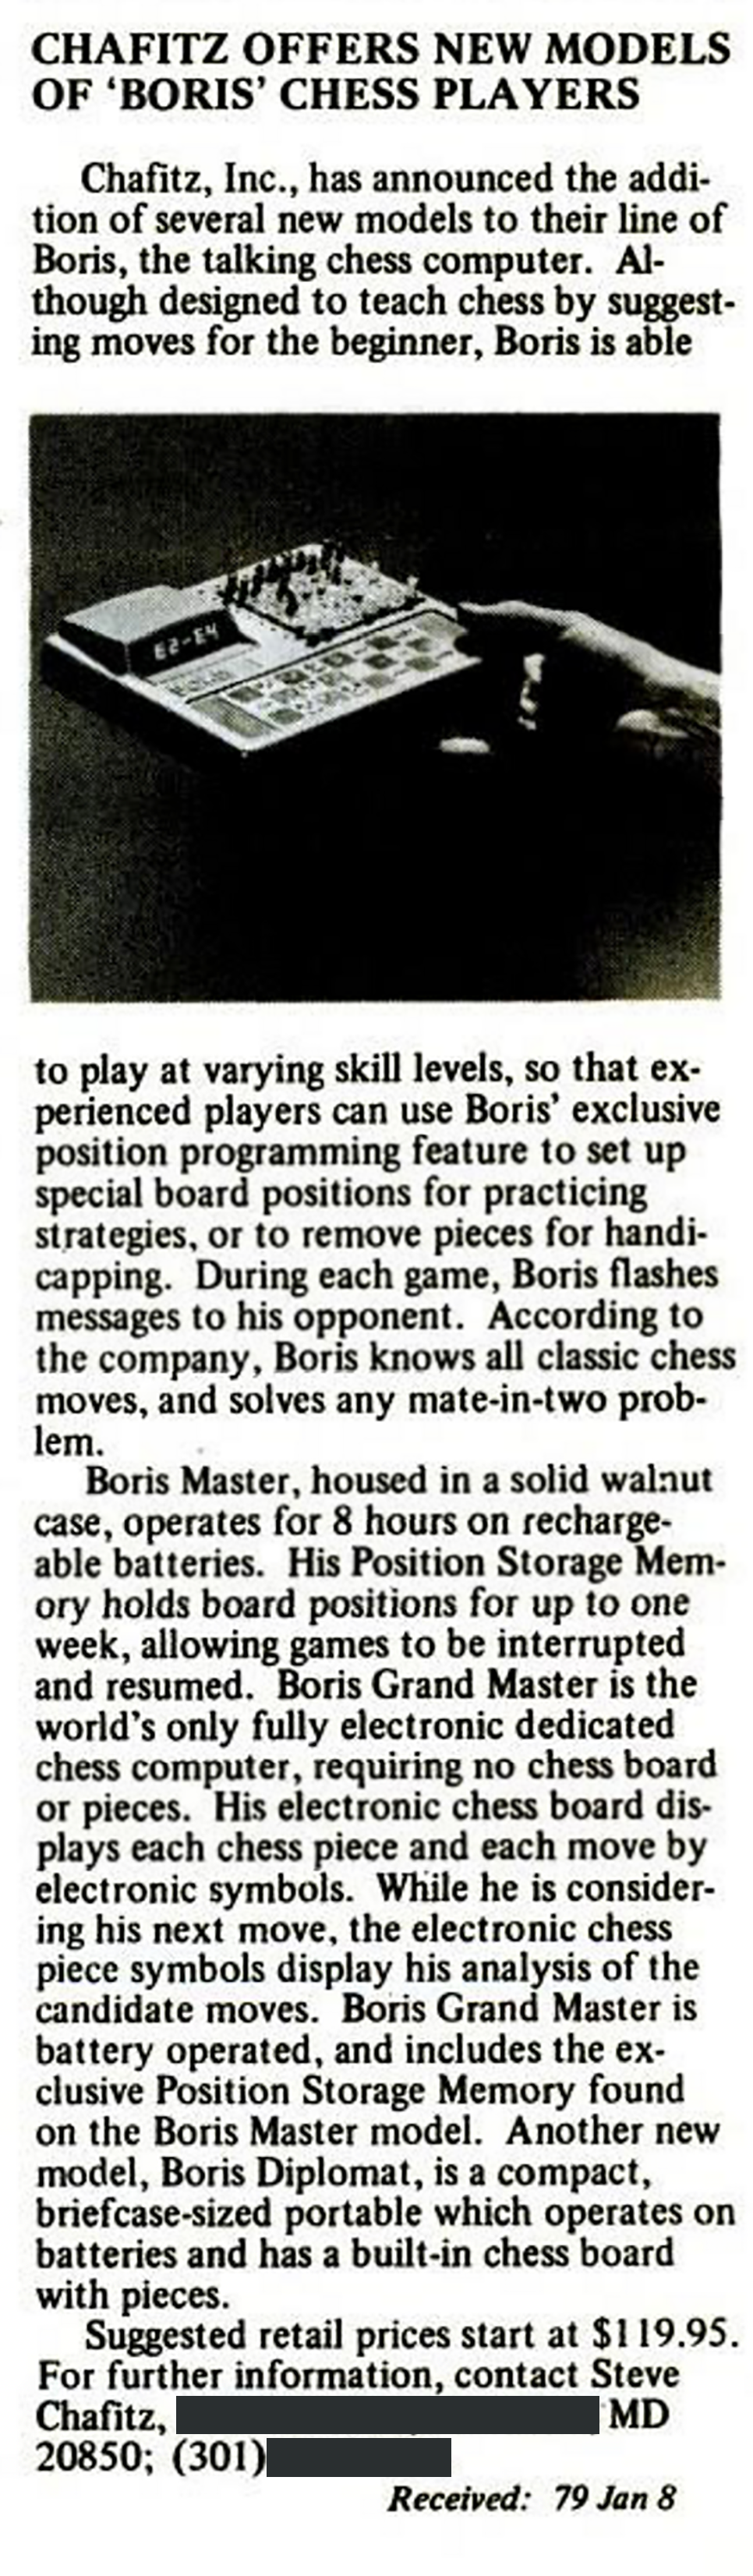 Chafitz Offers New Model of 'Boris' Chess Players   Chafitz, Inc., has announced the addition of several new models to their line of Boris, the talking chess computer. Although designed to teach chess by suggesting moves for the beginner, Boris is able to play at varying skill levels, so that experienced players can use Boris' exclusive position programming feature to set up special board positions for practicing strategies, or to remove pieces for handicapping. During each game, Boris flashes messages to his opponent. According to the company, Boris knows all classic chess moves, and solves any mate-in-two problem.   Boris Master, housed in a solid walnut case, operates for 8 hours on rechargeable batteries. His Position Storage Memory holds board positions for up to one week, allowing games to be interrupted and resumed. Boris Grand Master is the world's only fully electronic dedicated chess computer, requiring no chess board or pieces. His electronic chess board displays each chess piece and each move by electronic symbols. While he is considering his next move, the electronic chess piece symbols display his analysis of the candidate moves. Boris Grand Master is battery operated, and includes the exclusive Position Storage Memory found on the Boris Master model. Another new model, Boris Diplomat, is a compact, briefcase-sized portable which operates on batteries and has a built-in chess board with pieces.  Suggested retail prices start at $119.95. For further information, contact Steve Chafitz _______MD 20850; (301) ___________.